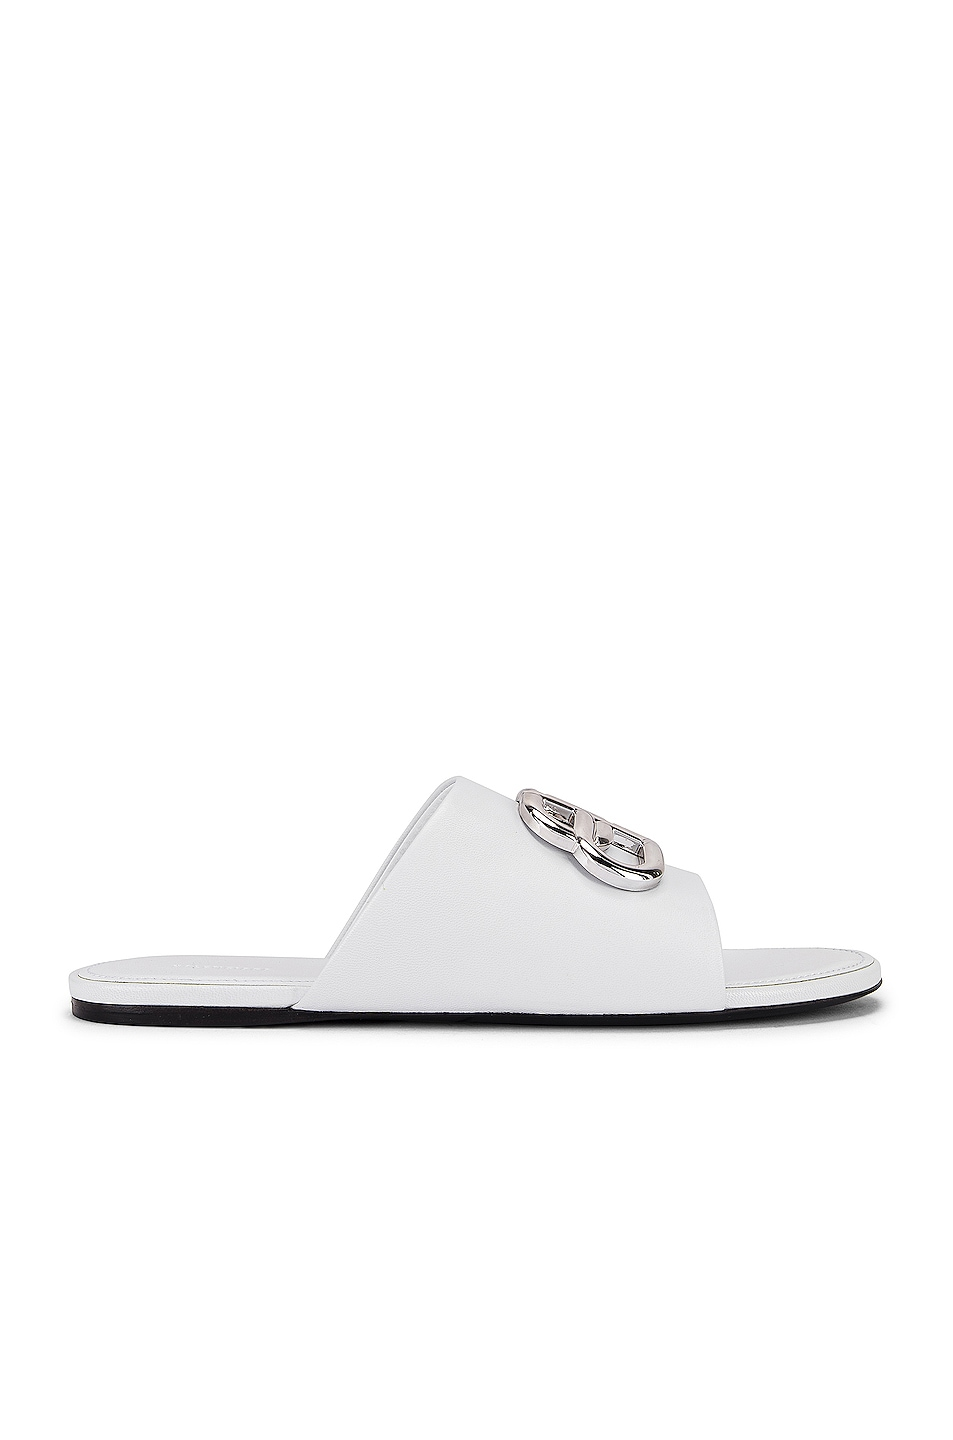 Image 2 of Balenciaga Oval BB Slides in White & Silver